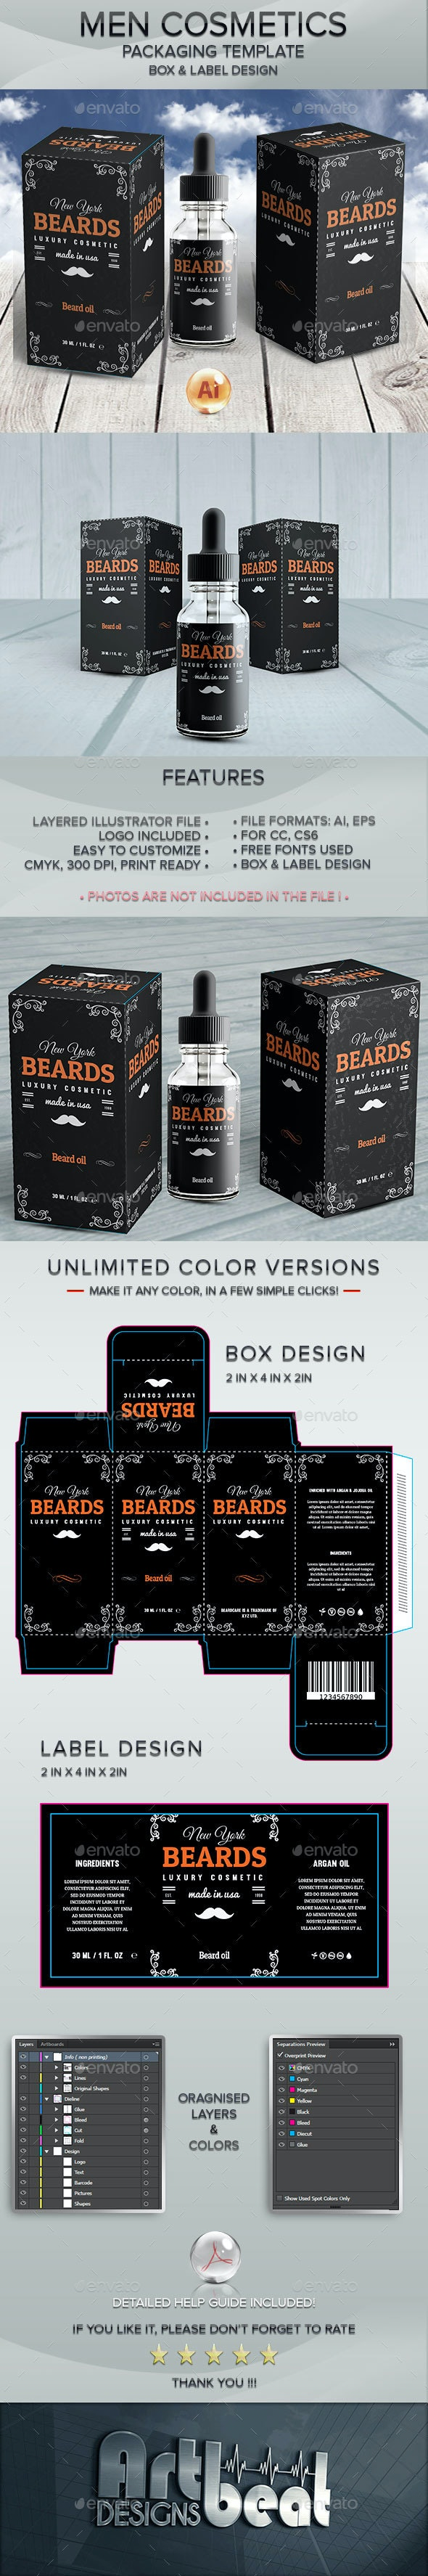 Beard Care Cosmetics - Packaging and Label Template 3